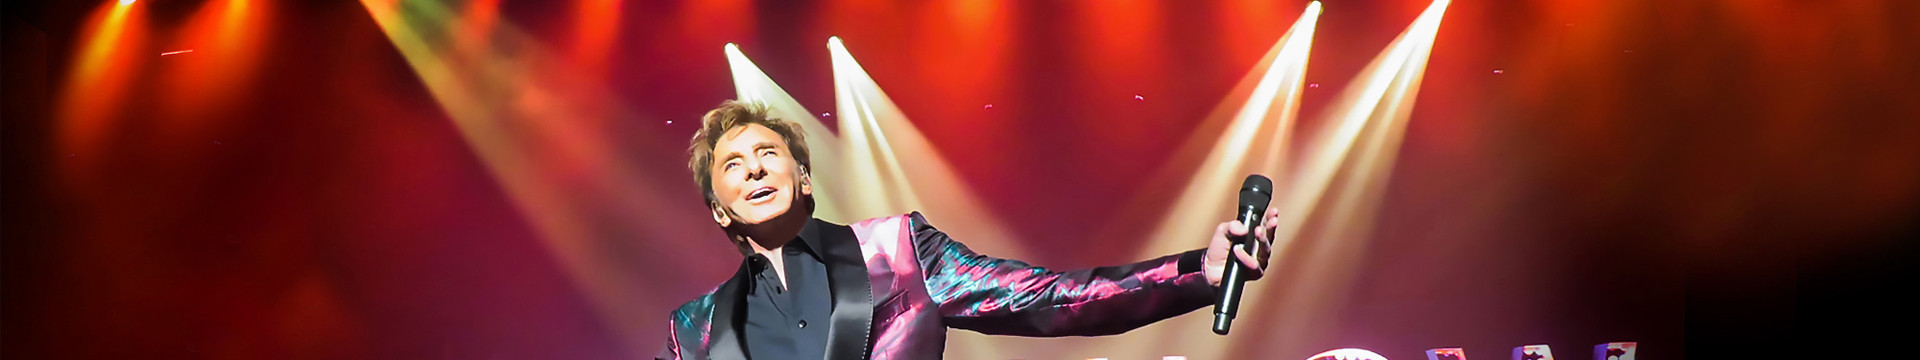 Barry Manilow at our Las Vegas Hotel and Casino | Manilow Las Vegas